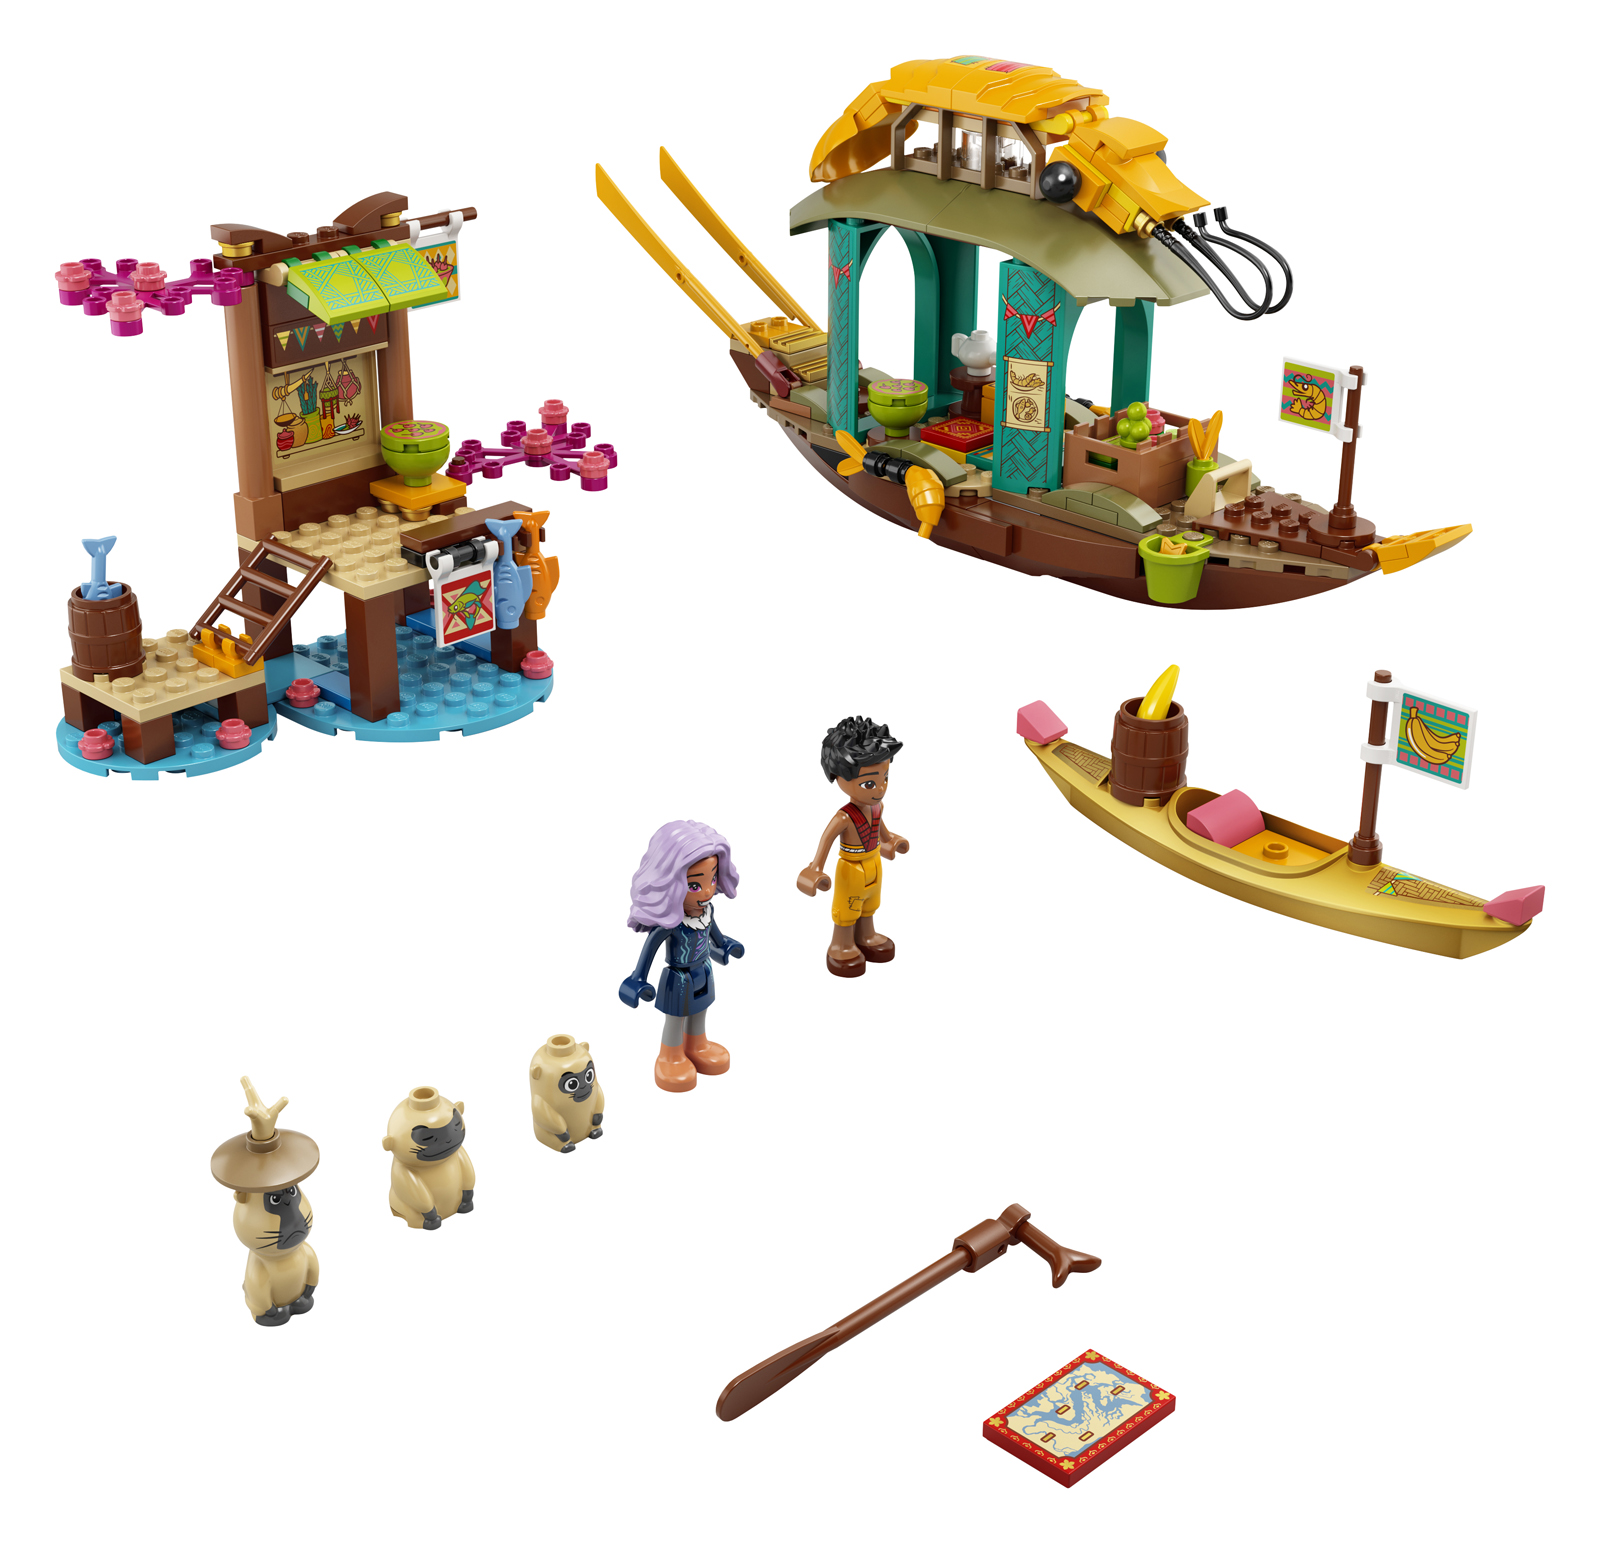 LEGO Disney Raya and the Last Dragon Sets Officially Announced